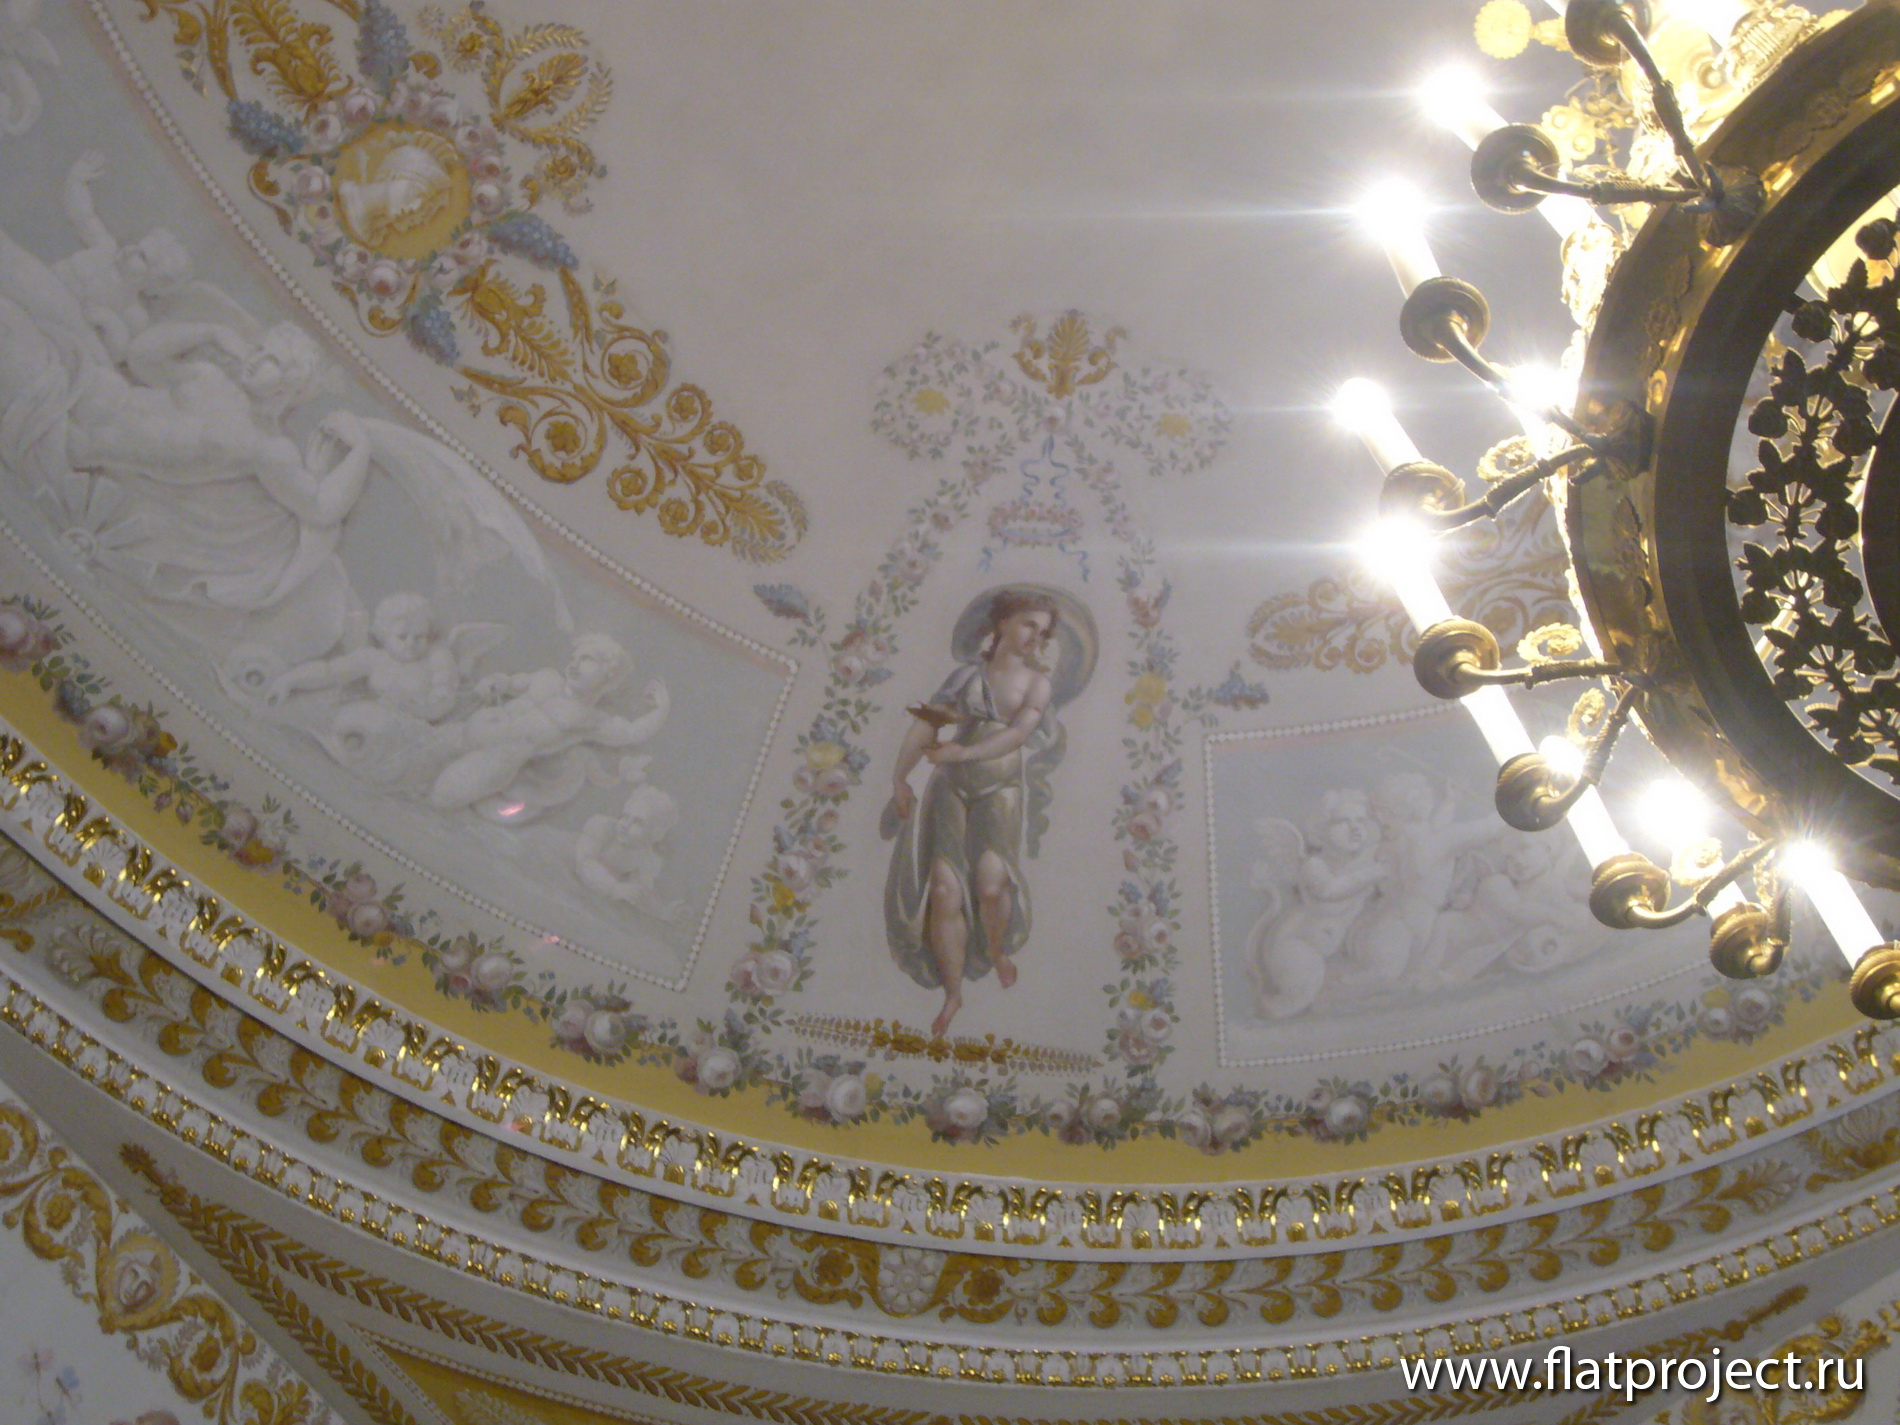 The State Russian museum interiors – photo 58